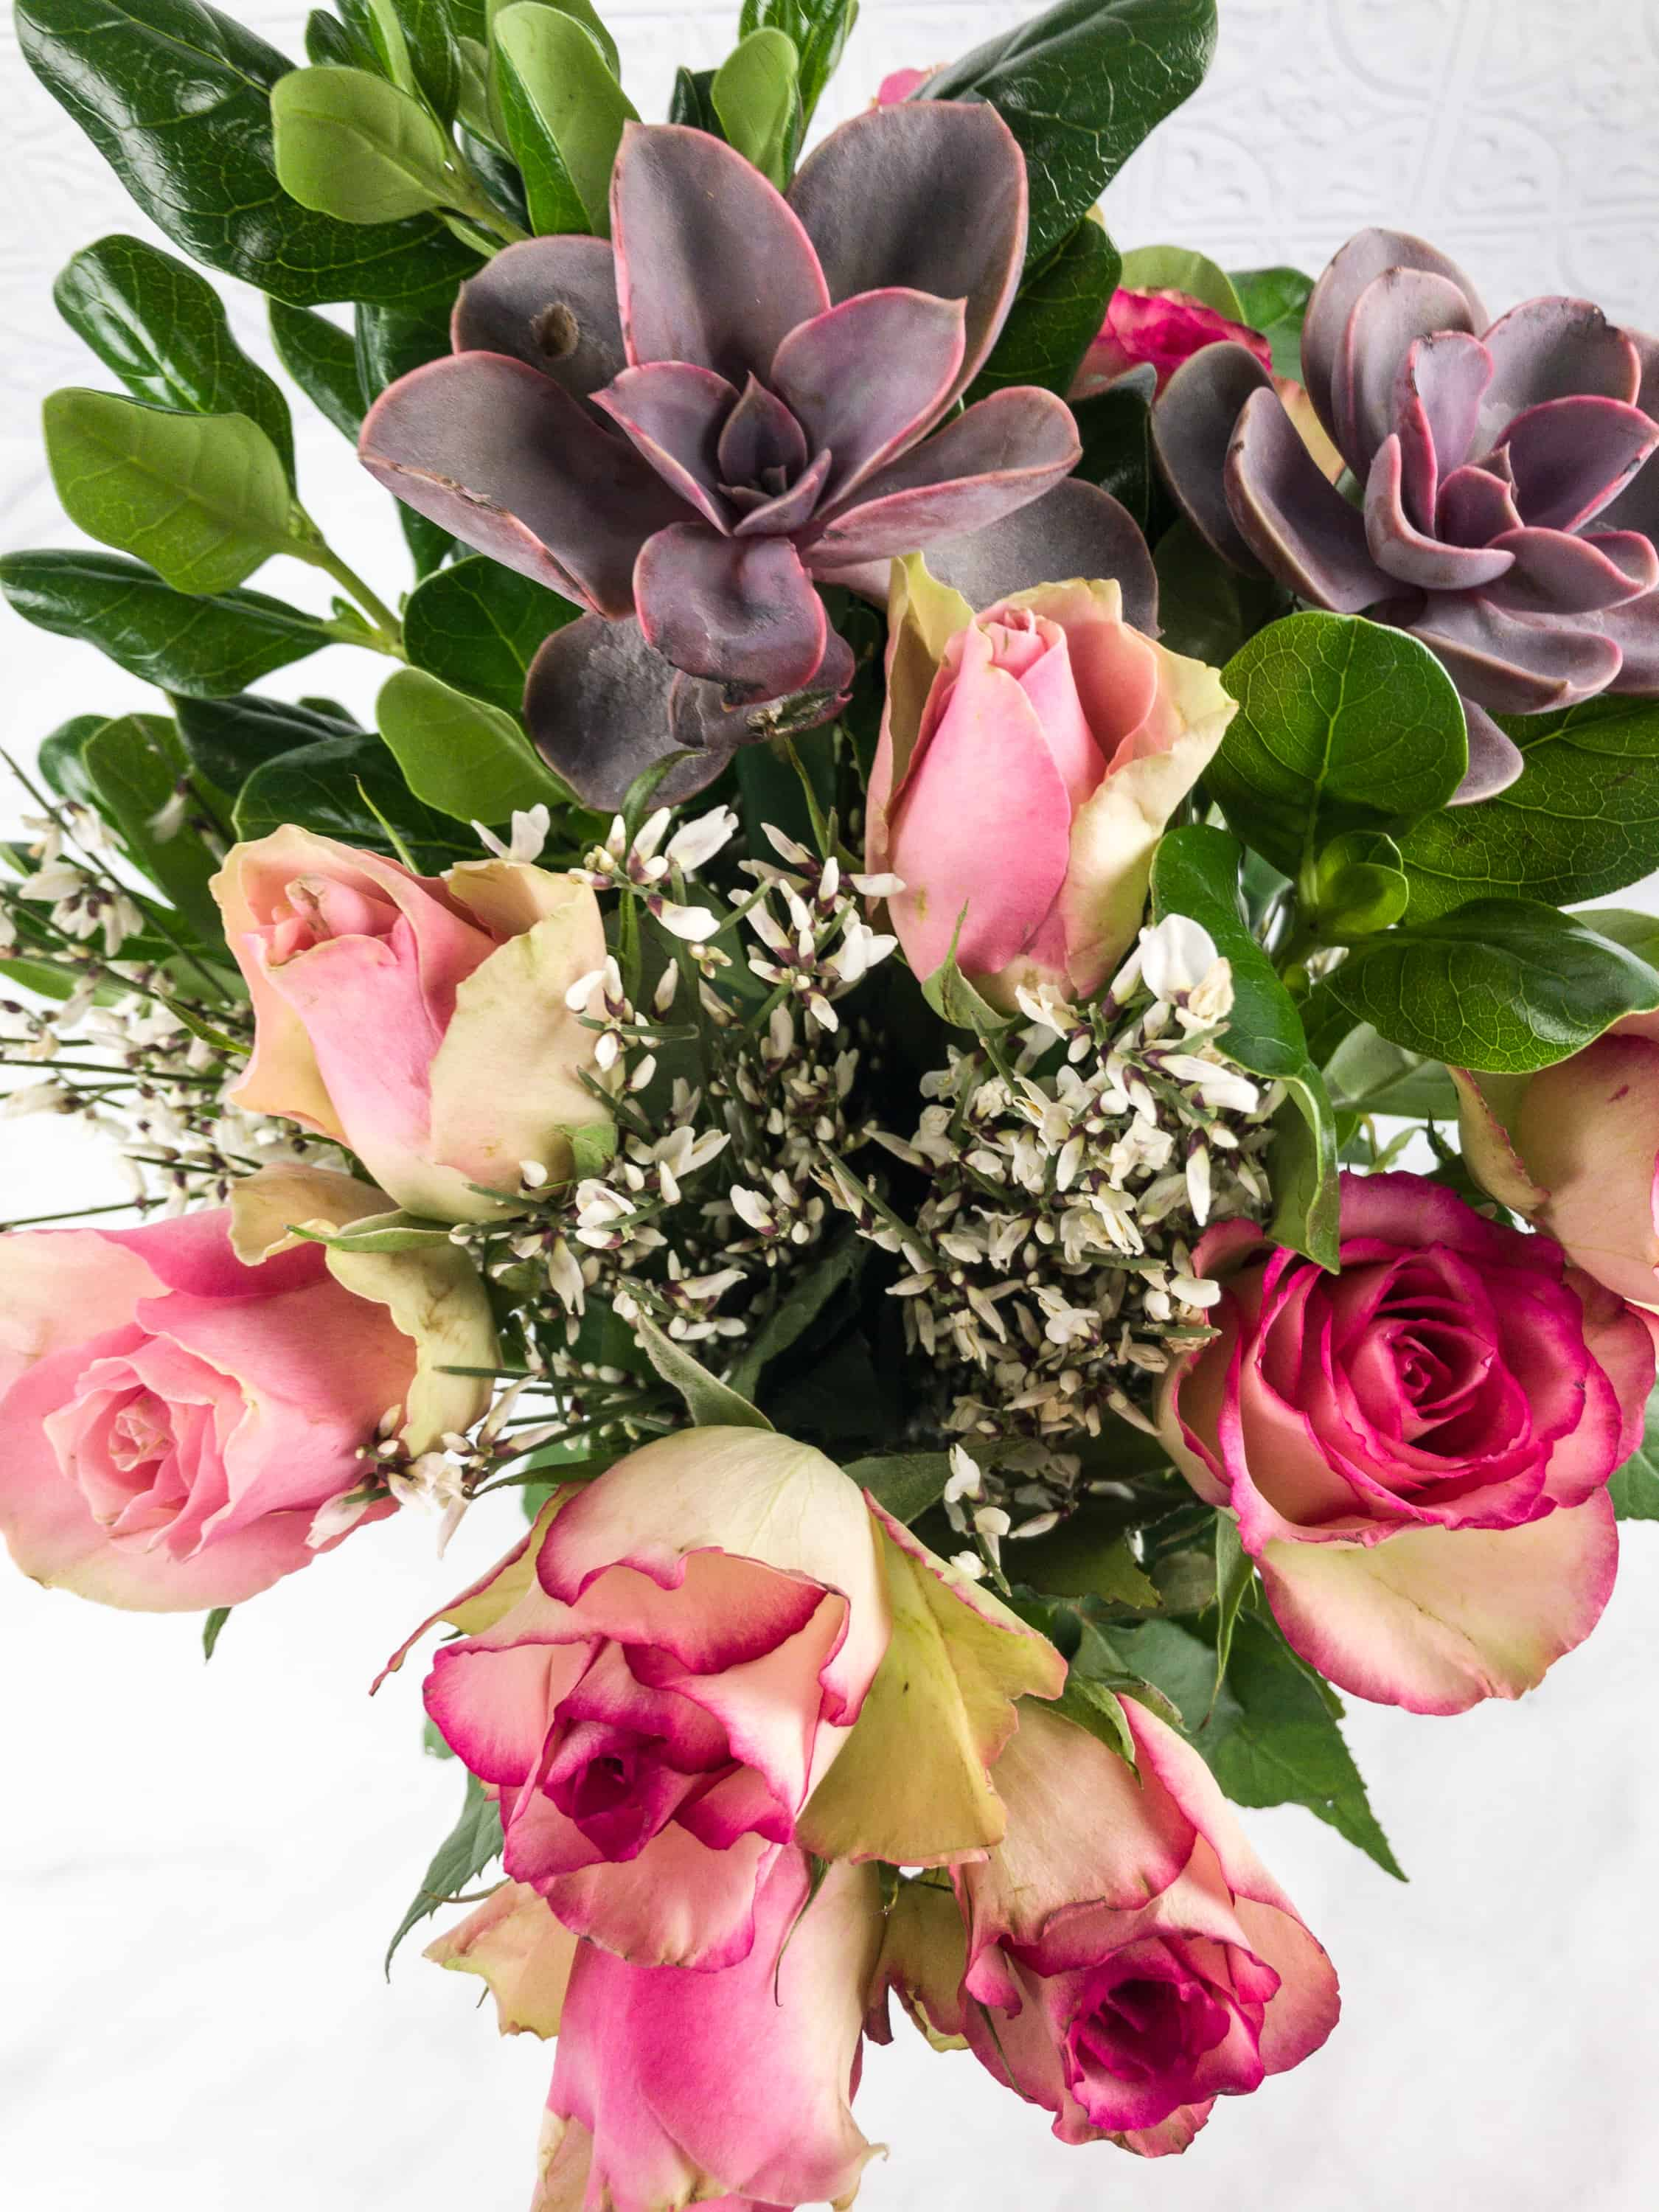 The bouqs february 2018 review coupon hello subscription all the elements work well together and even though there are different colors they blend really well when my roses wilt ill be reusing my new succulents izmirmasajfo